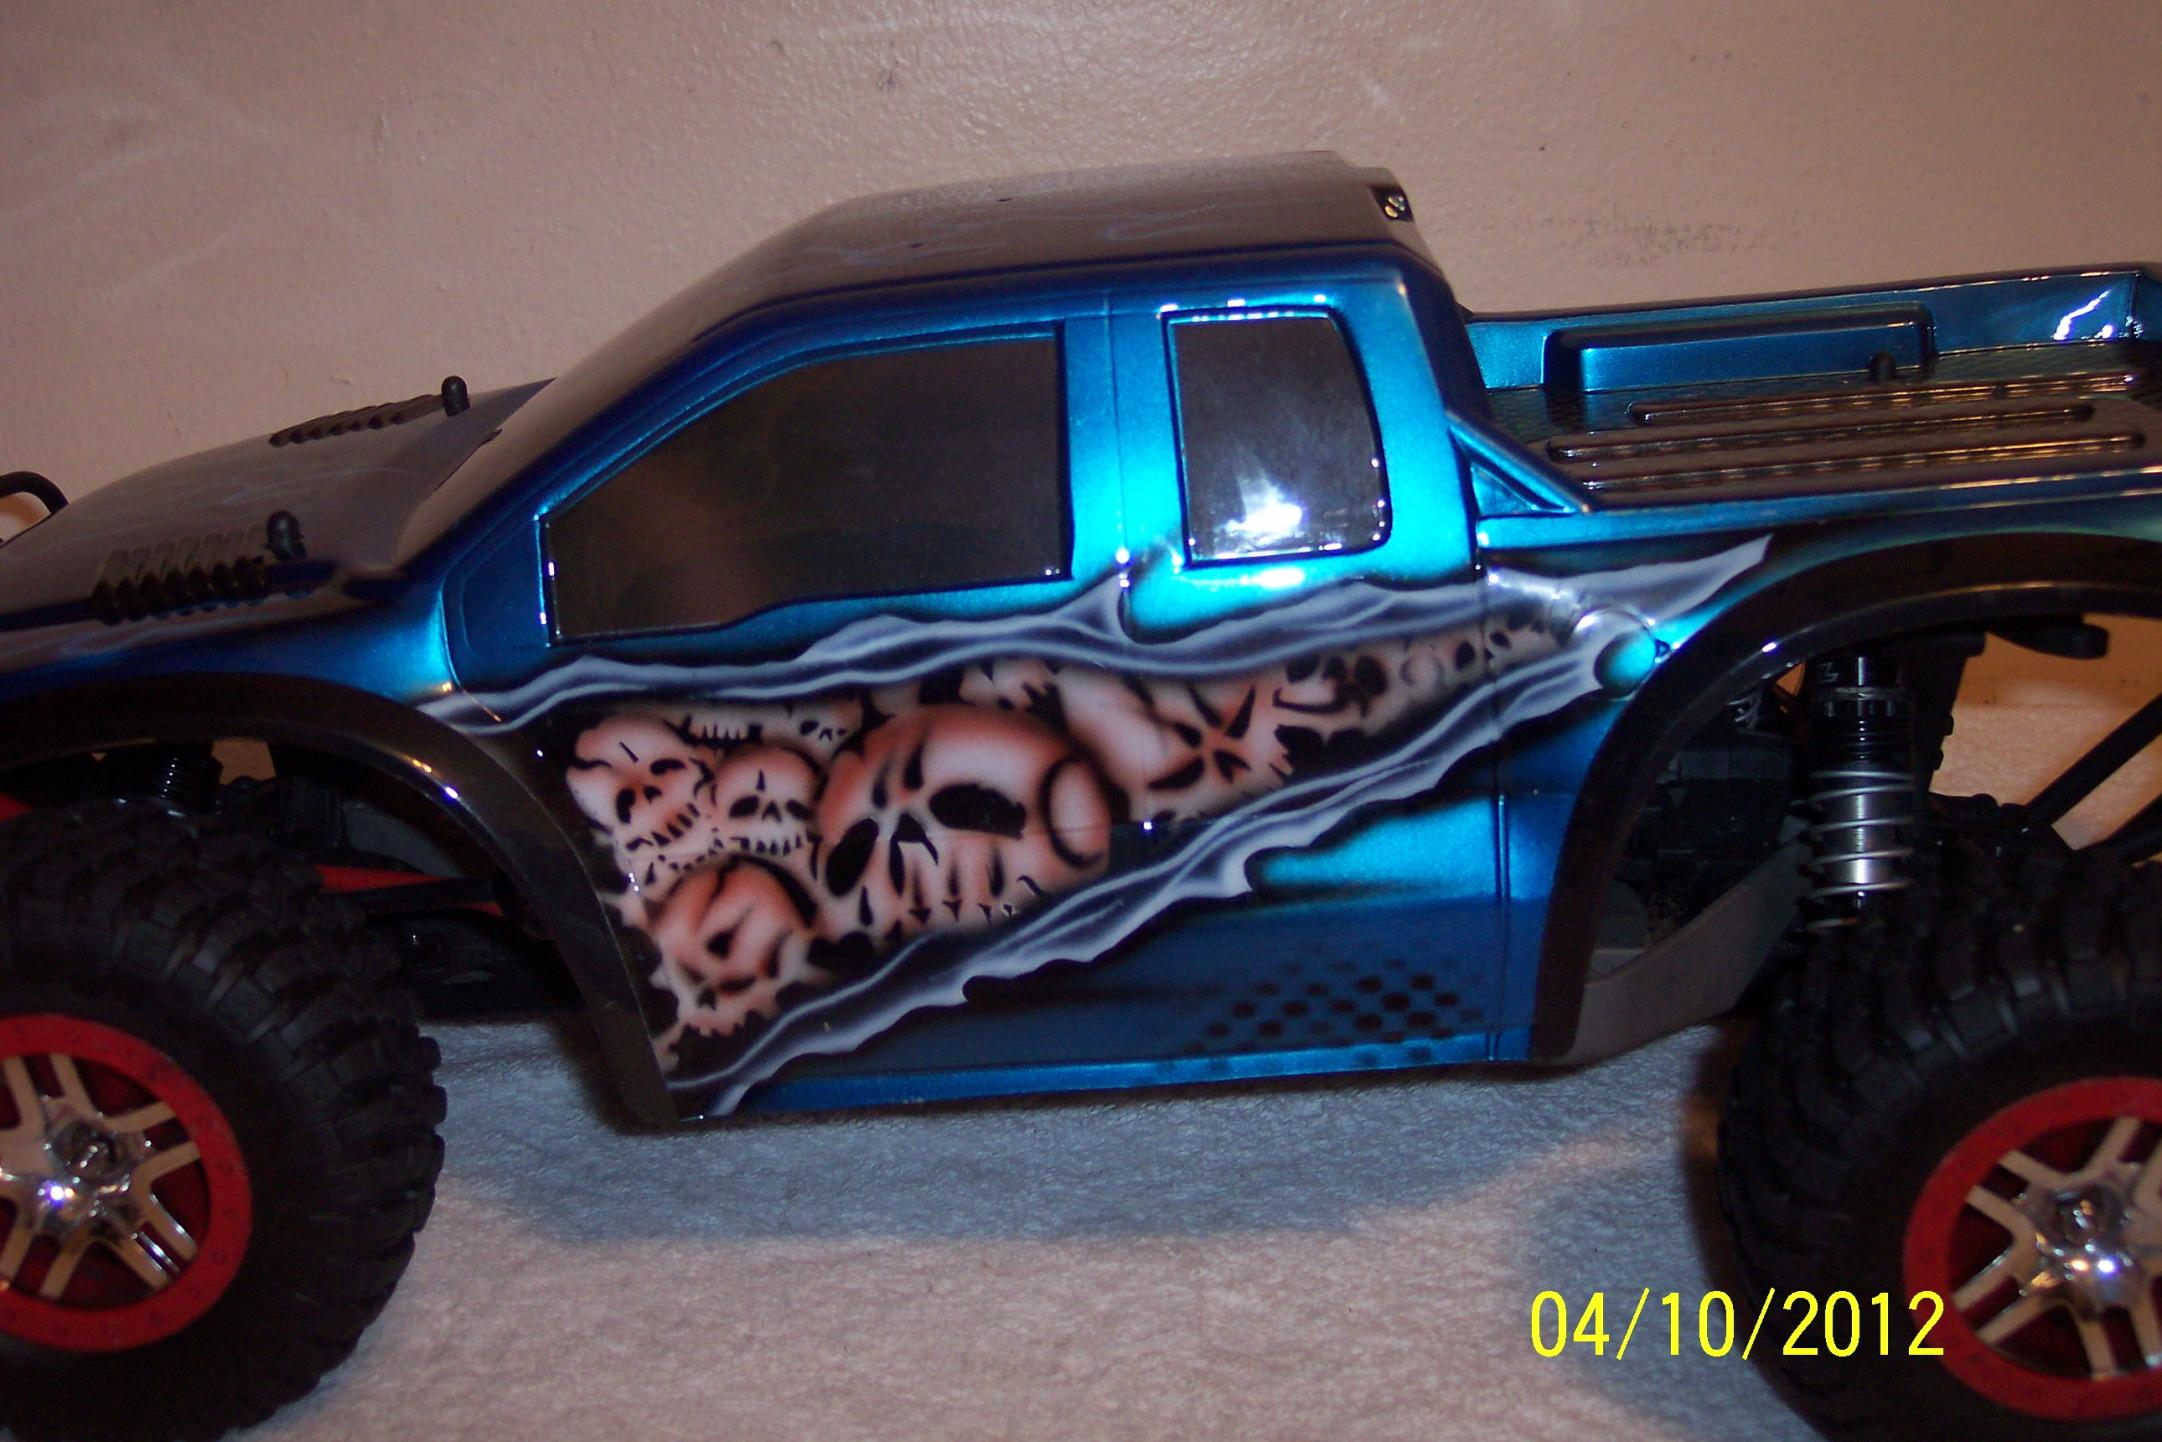 Ford Raptor For Sale >> SLASH BODY CUSTOM PAINTED NEW F-250 - R/C Tech Forums